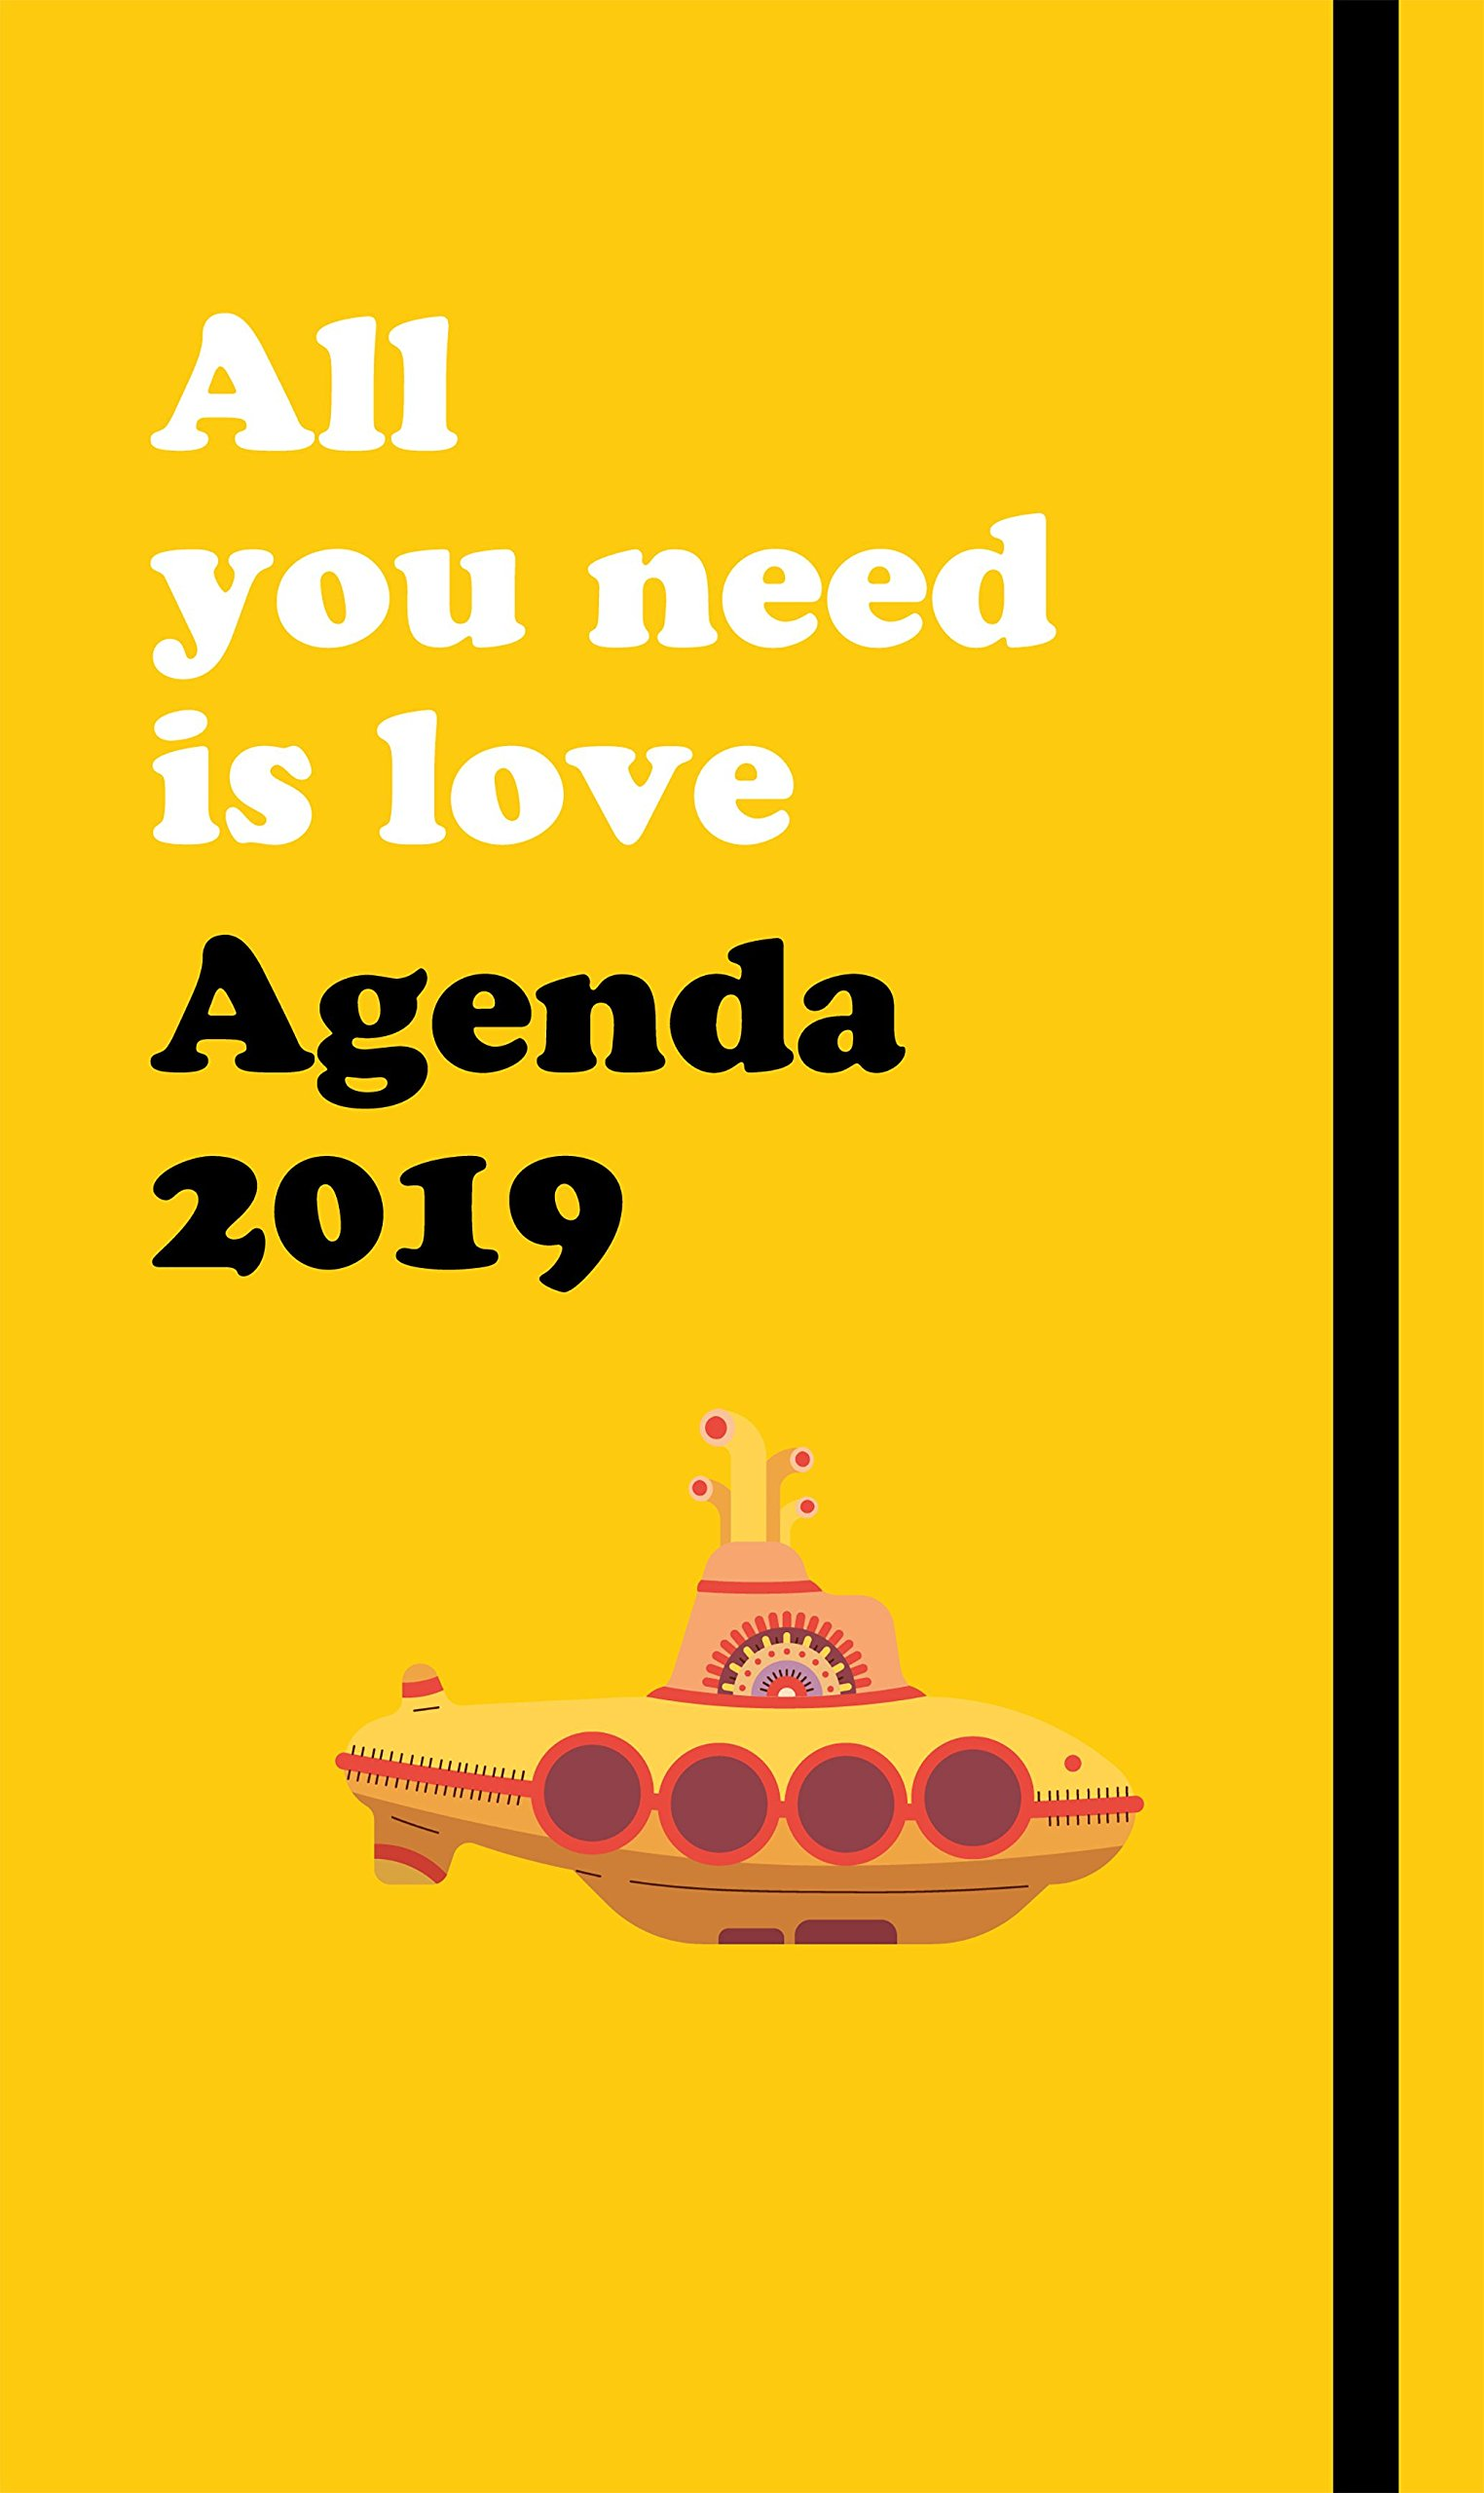 Agenda anual The Beatles 2019: All you need is love SIN ...